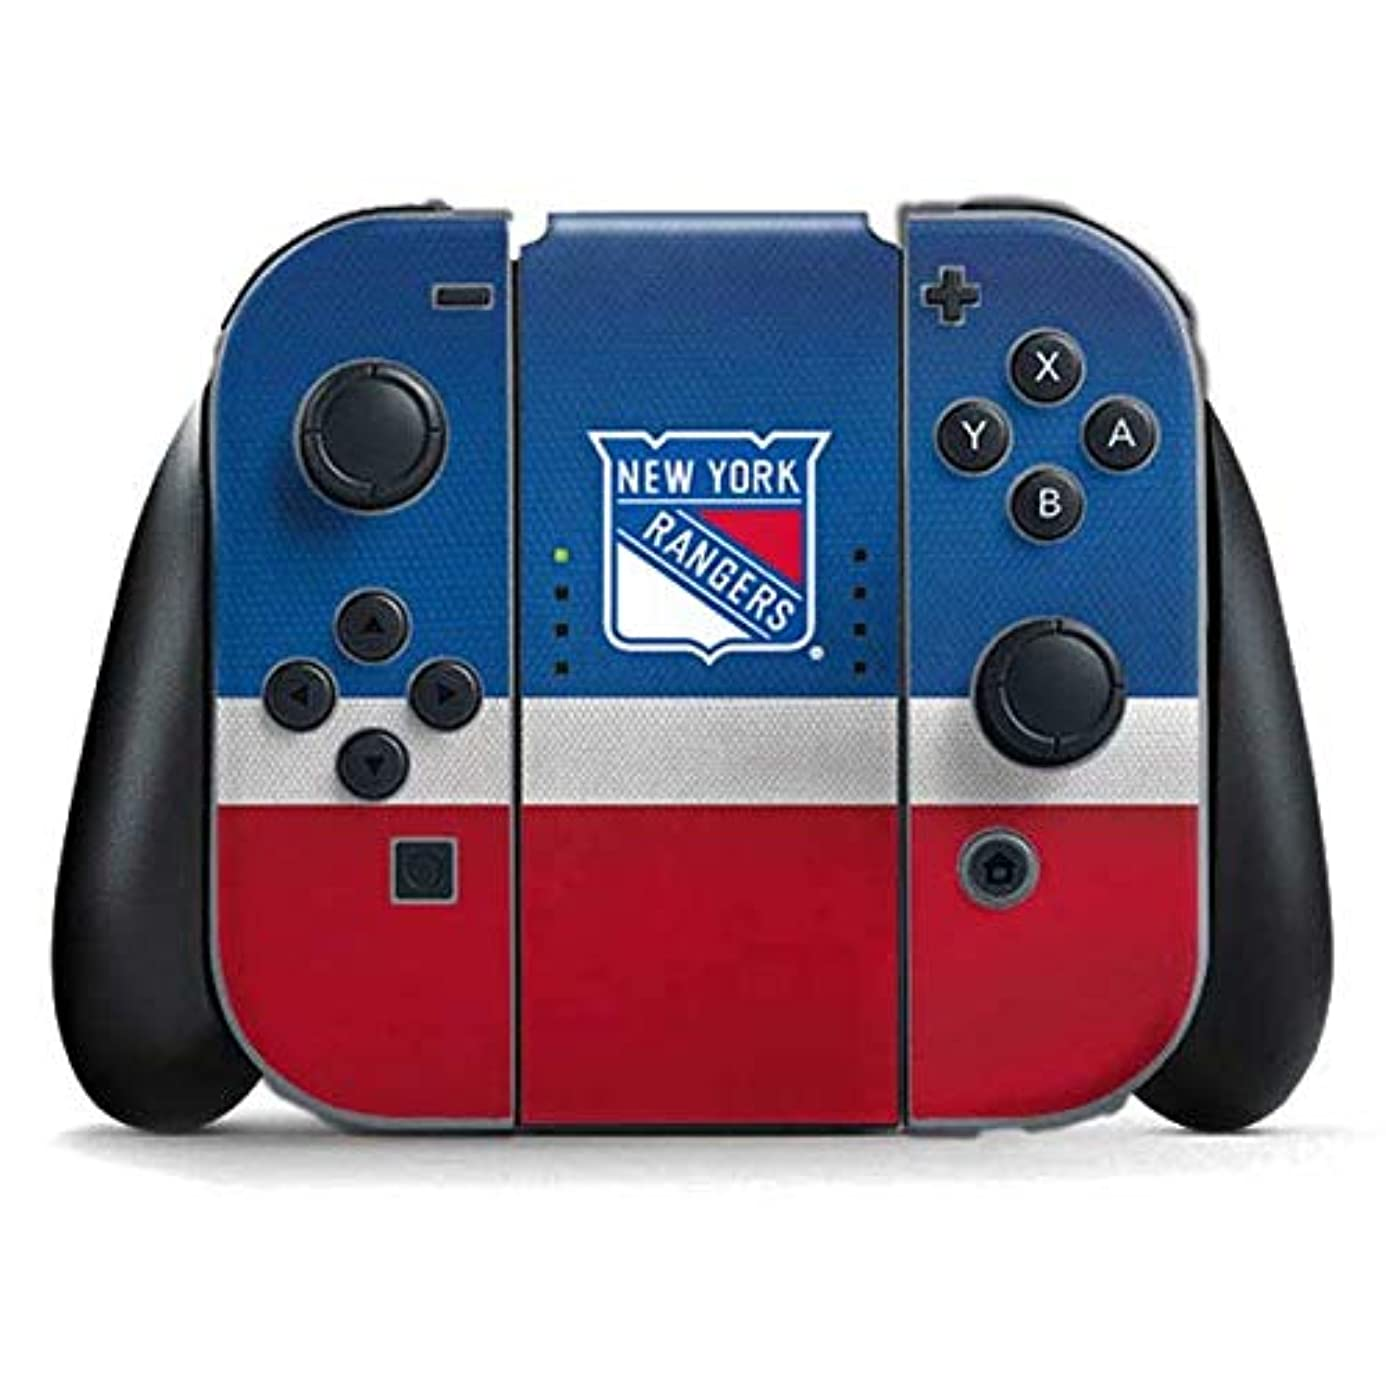 Skinit New York Rangers Jersey Nintendo Switch Joy Con Controller Skin - Officially Licensed NHL Gaming Decal - Ultra Thin, Lightweight Vinyl Decal Protection